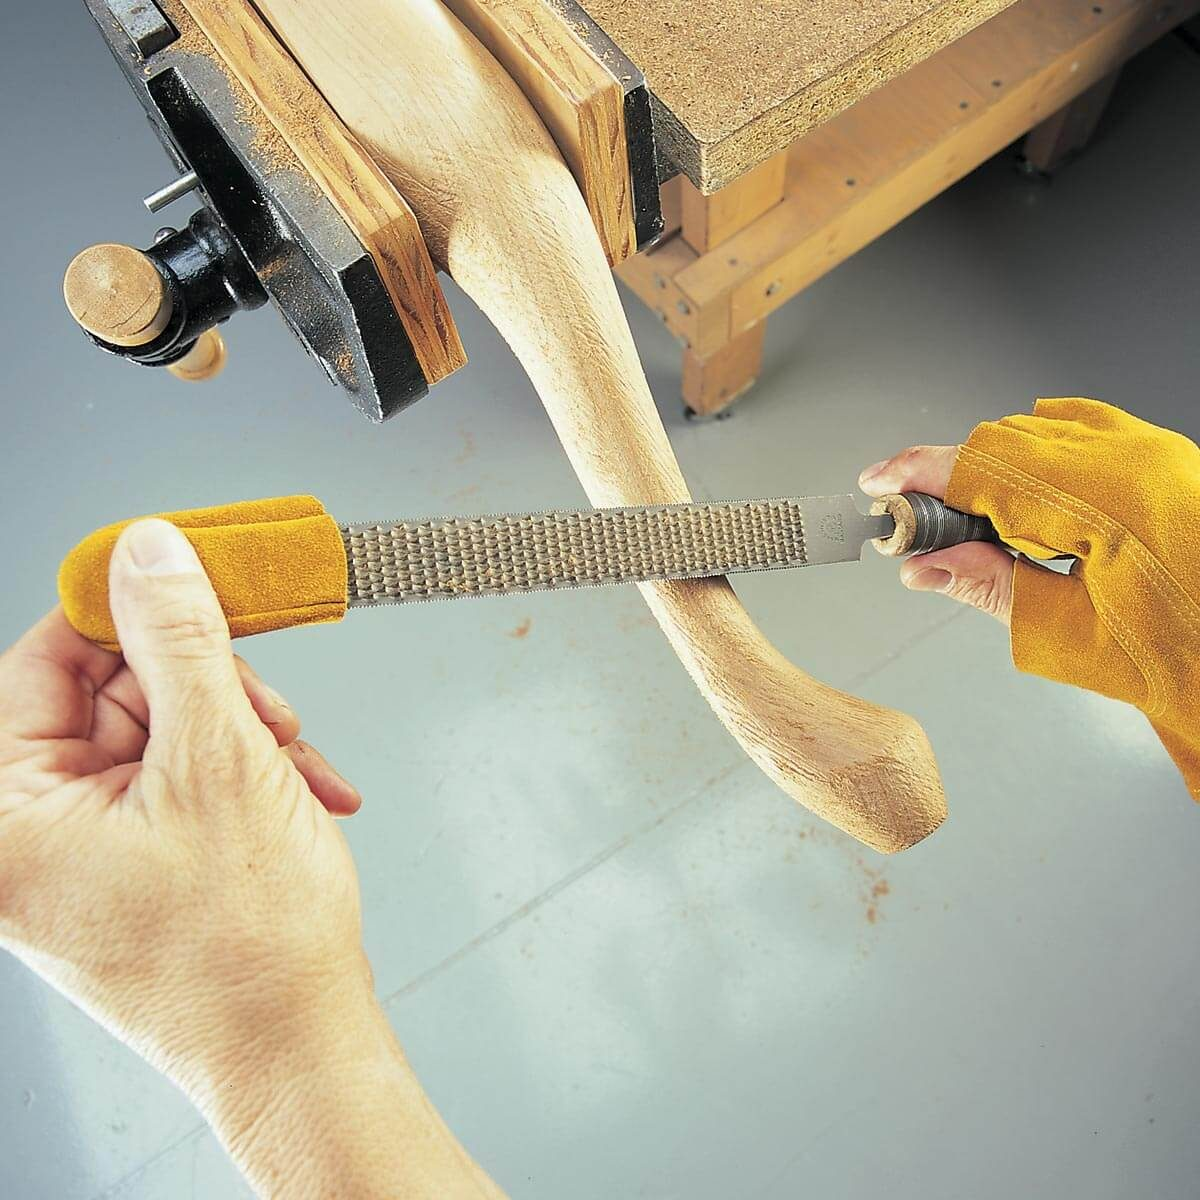 rasping woodworking project